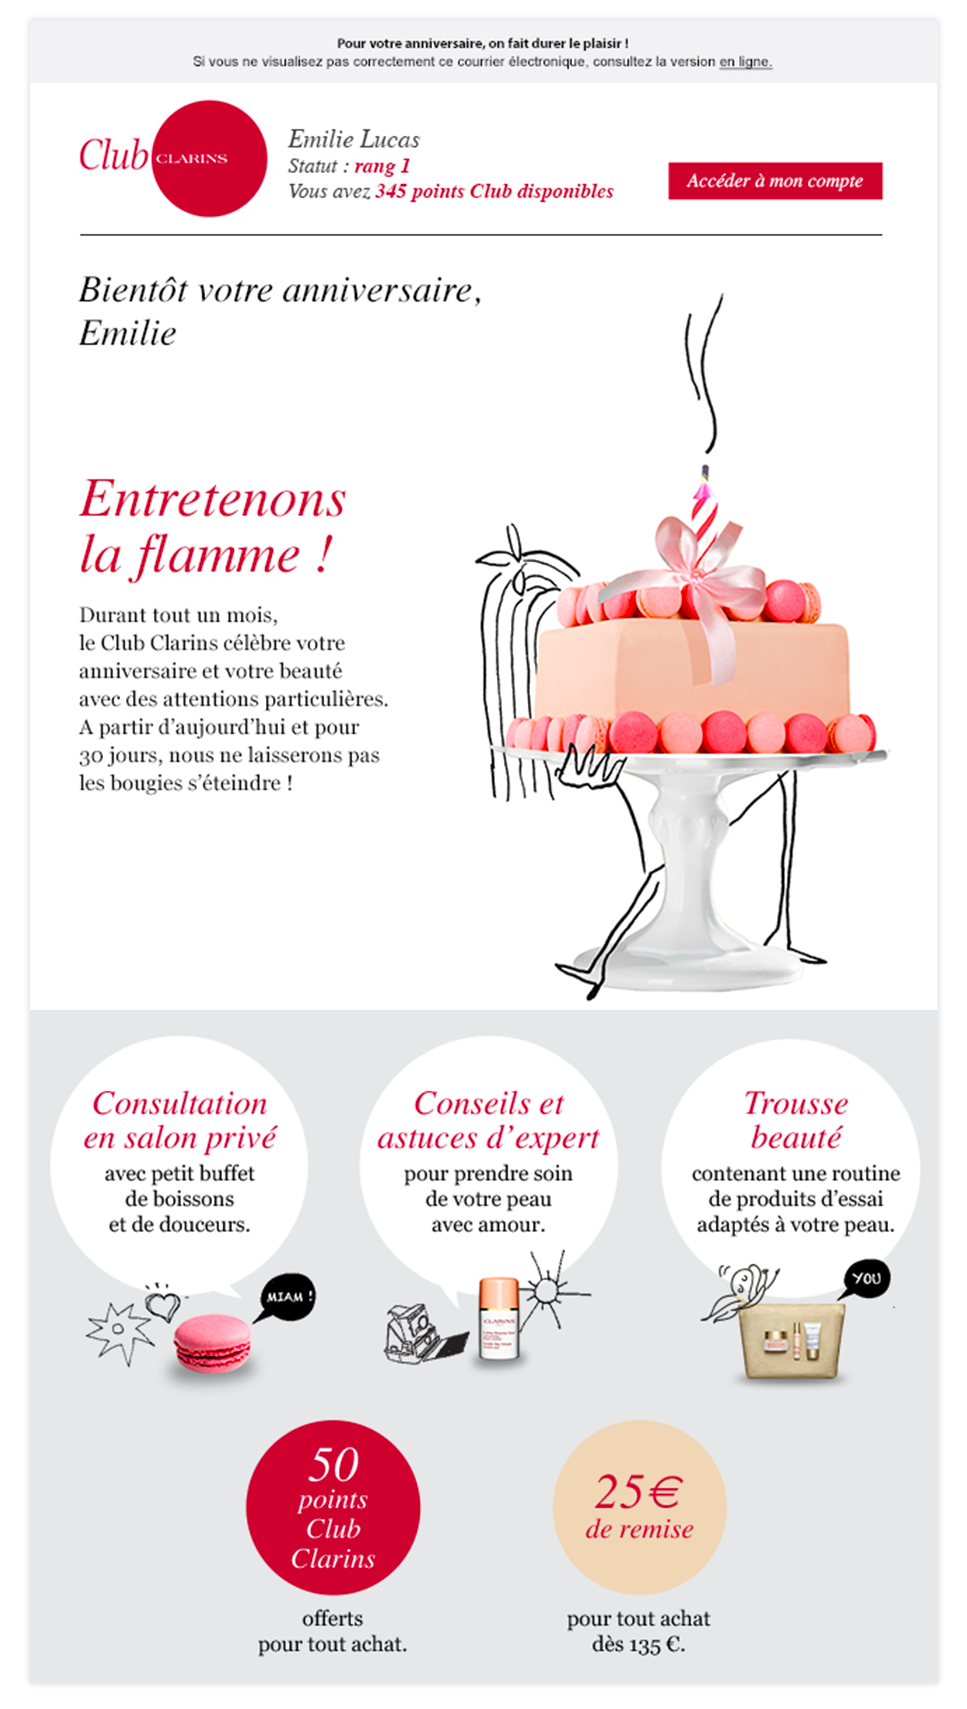 cathy-vuillemin-directice-artistique-clarins-3